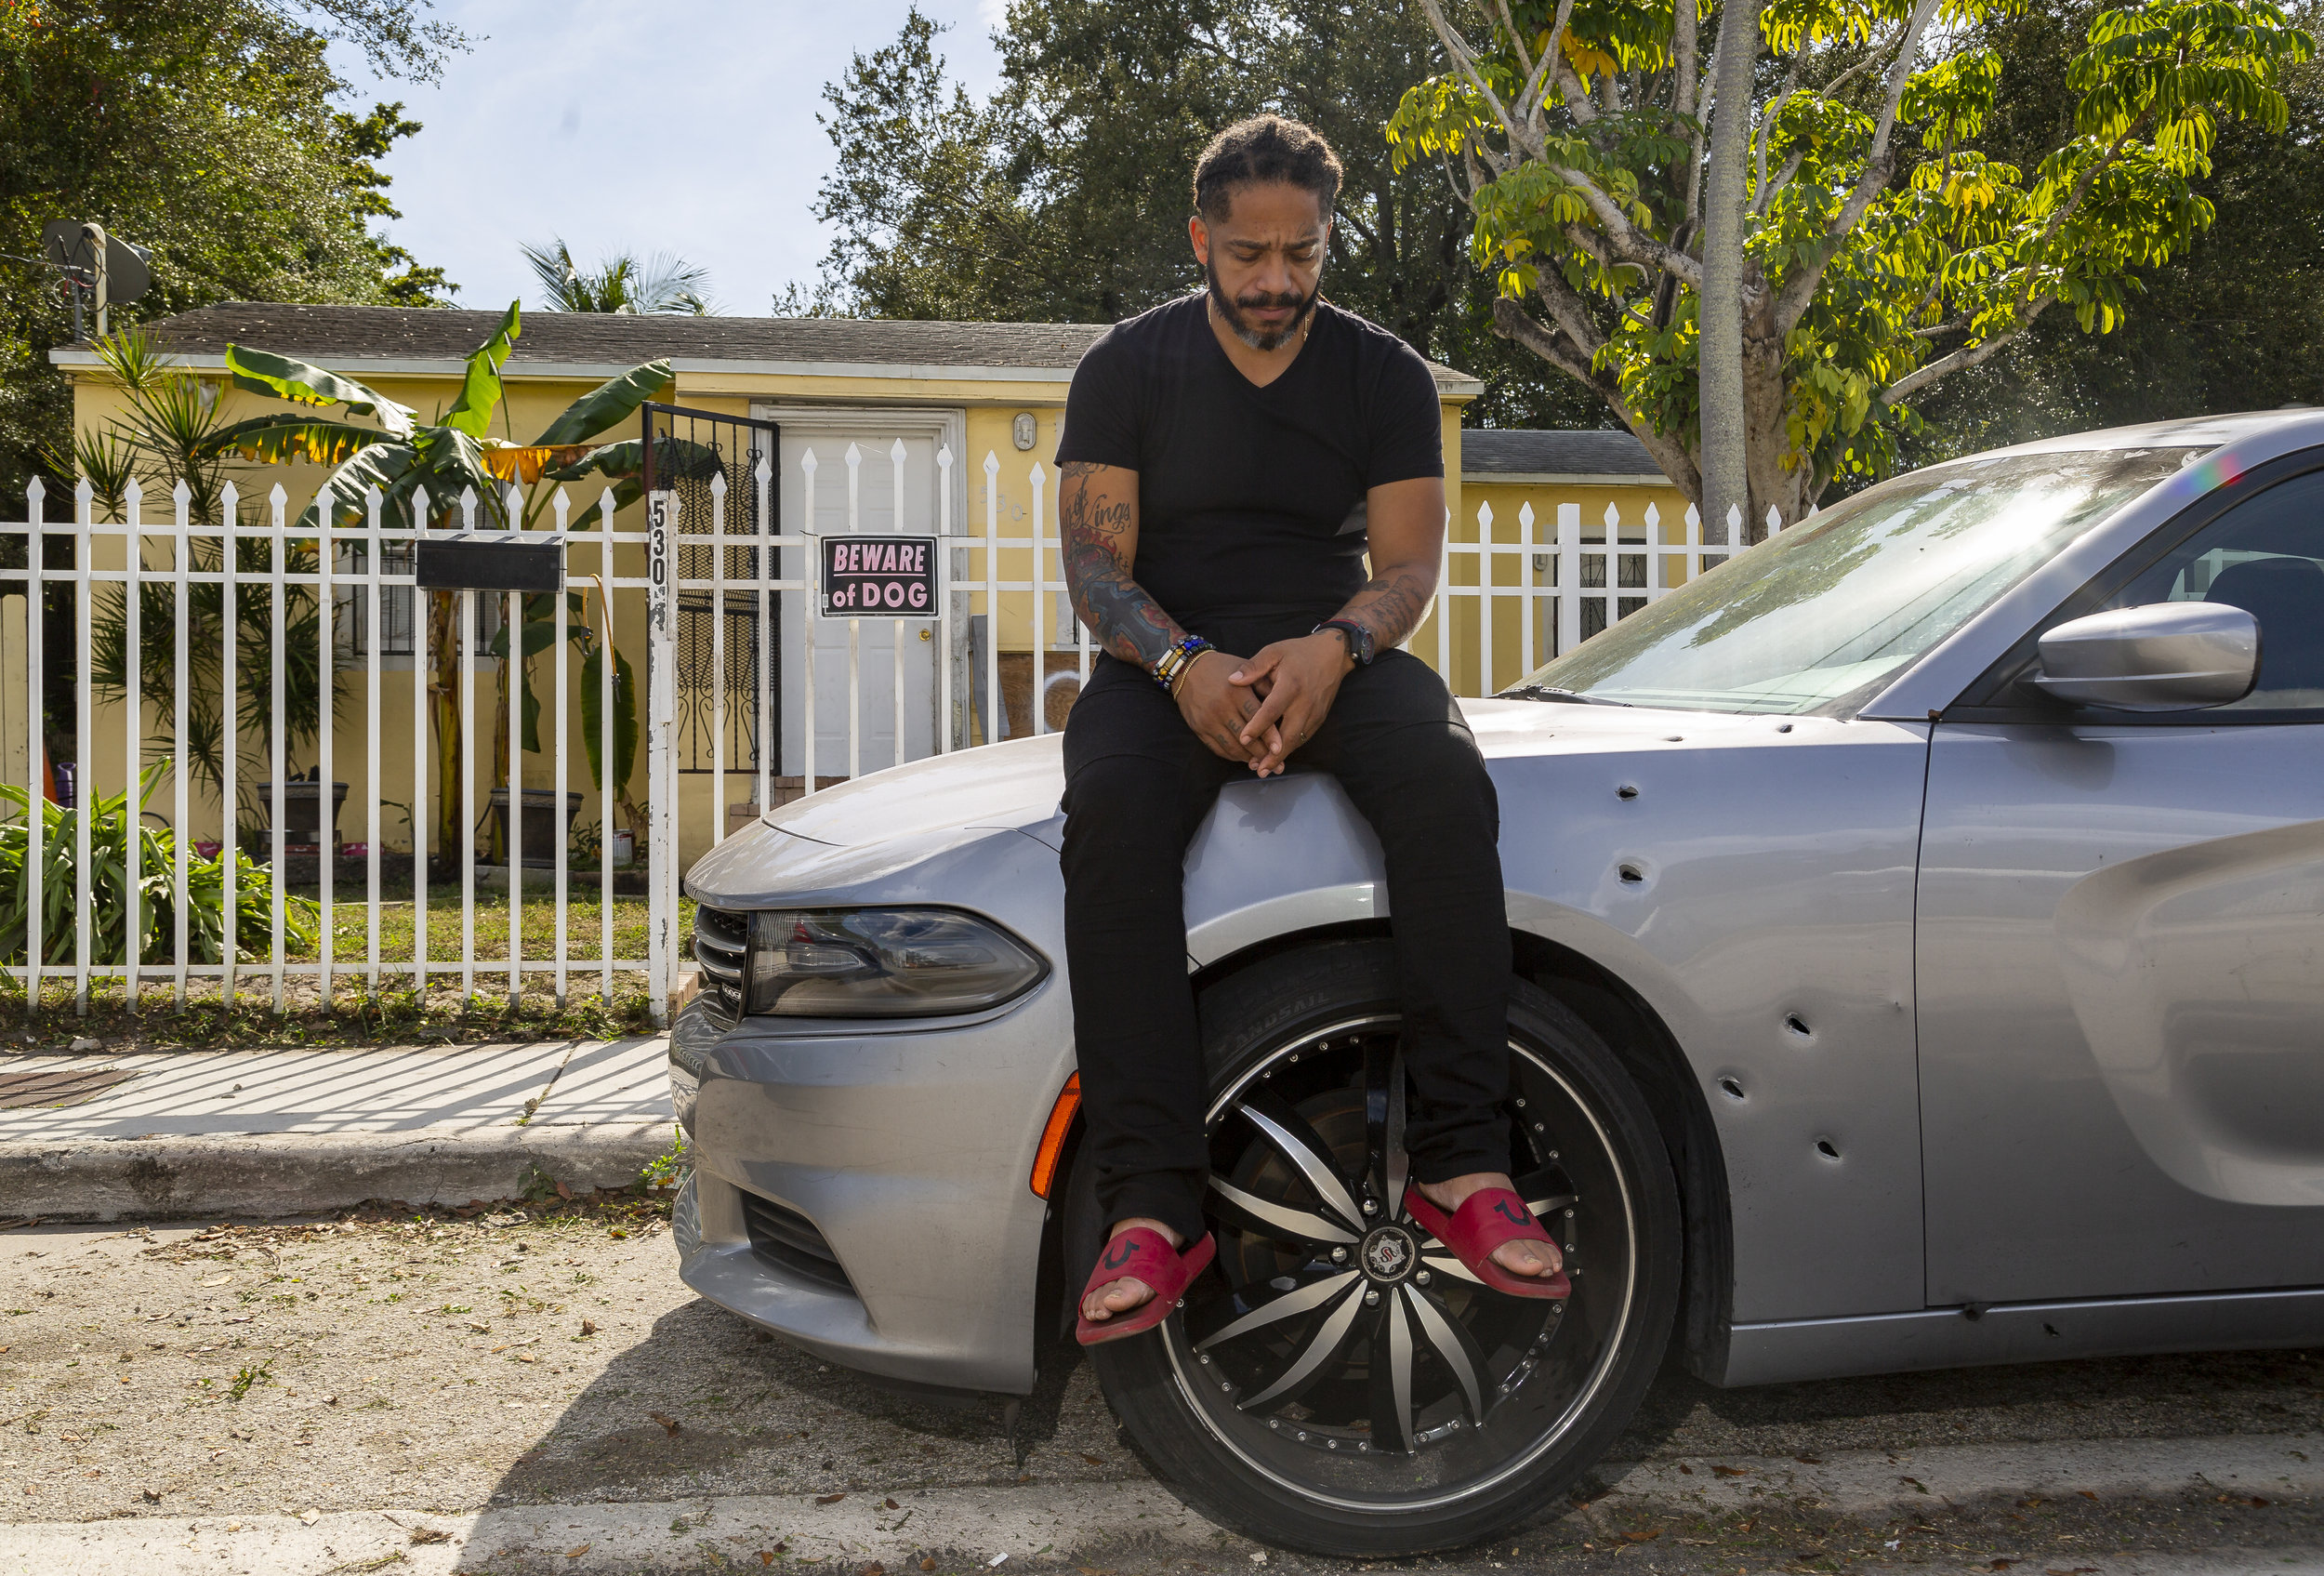 Free Rene Balbona, 39, a youth pastor, sits on his car in front of his home in Little Haiti on Saturday, January 19, 2019. Balbona's car and home were sprayed with bullets when his house got shot on November 28, 2018. Balbona's son, Isaiah, was killed on December 28, 2018 inside a different car in Opa-locka.